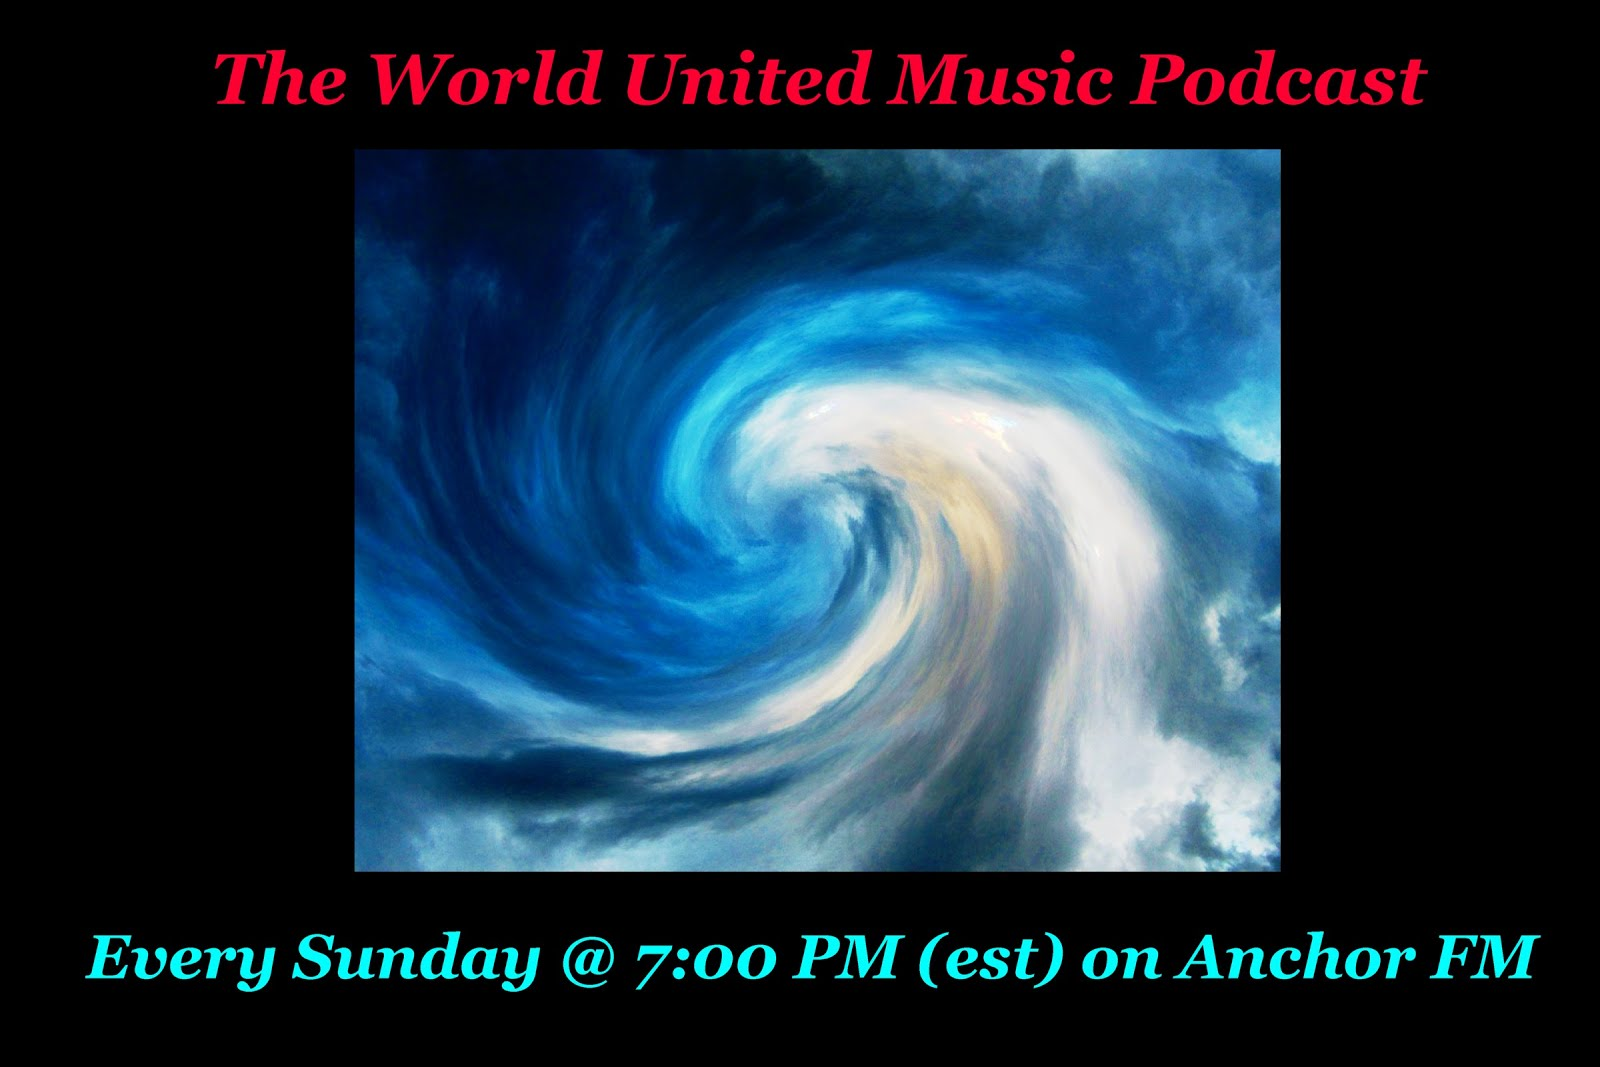 World United Music Podcast